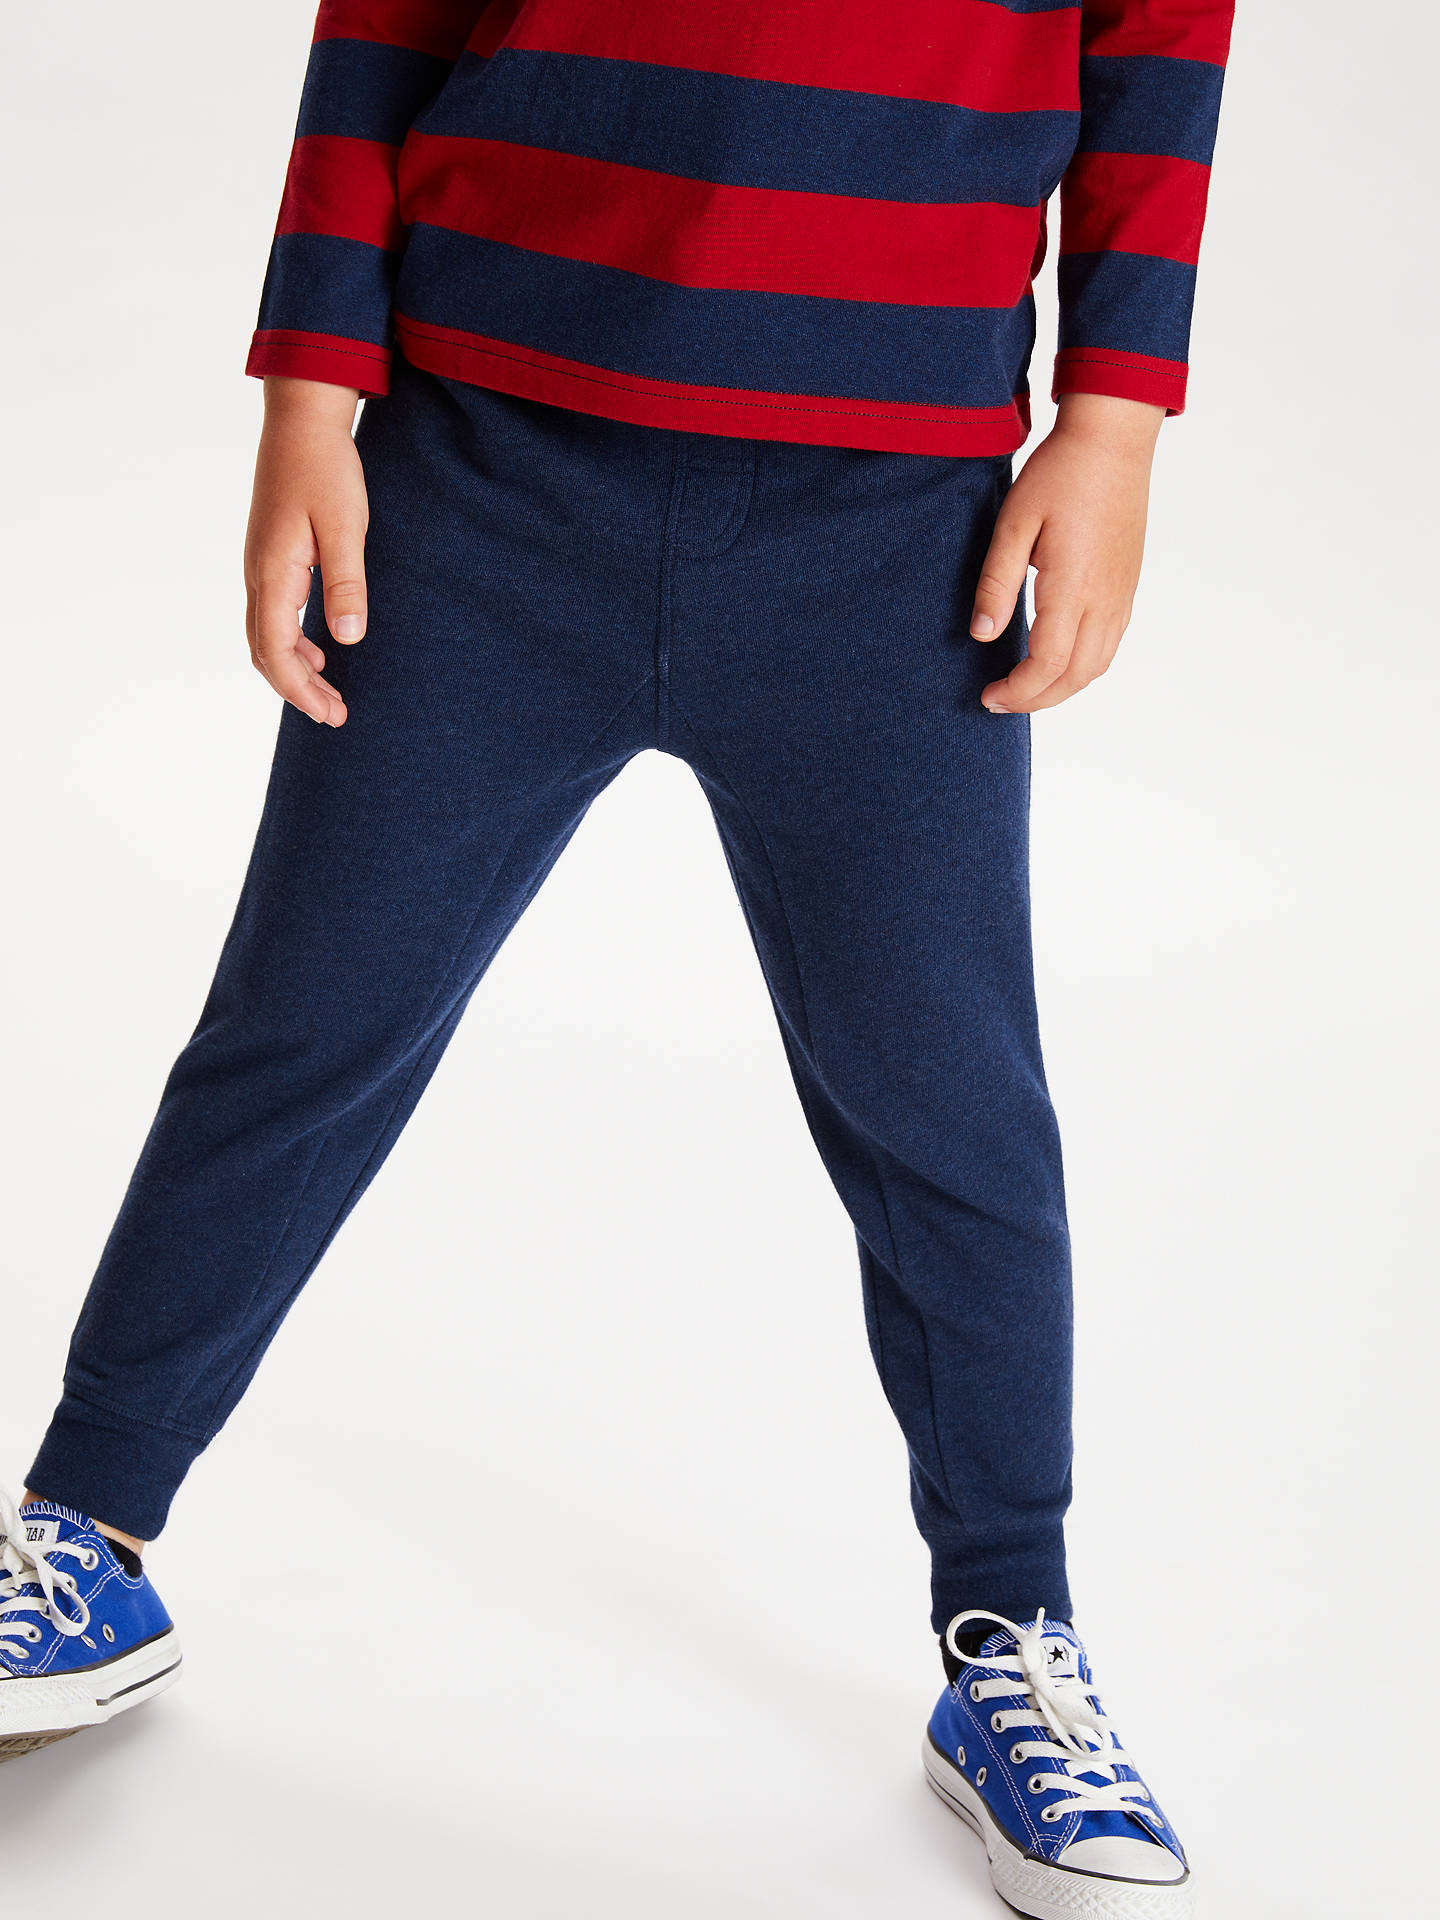 881637e2ccab92 Buy John Lewis & Partners Boys' Fashion Joggers, Navy, 2 years Online at ...